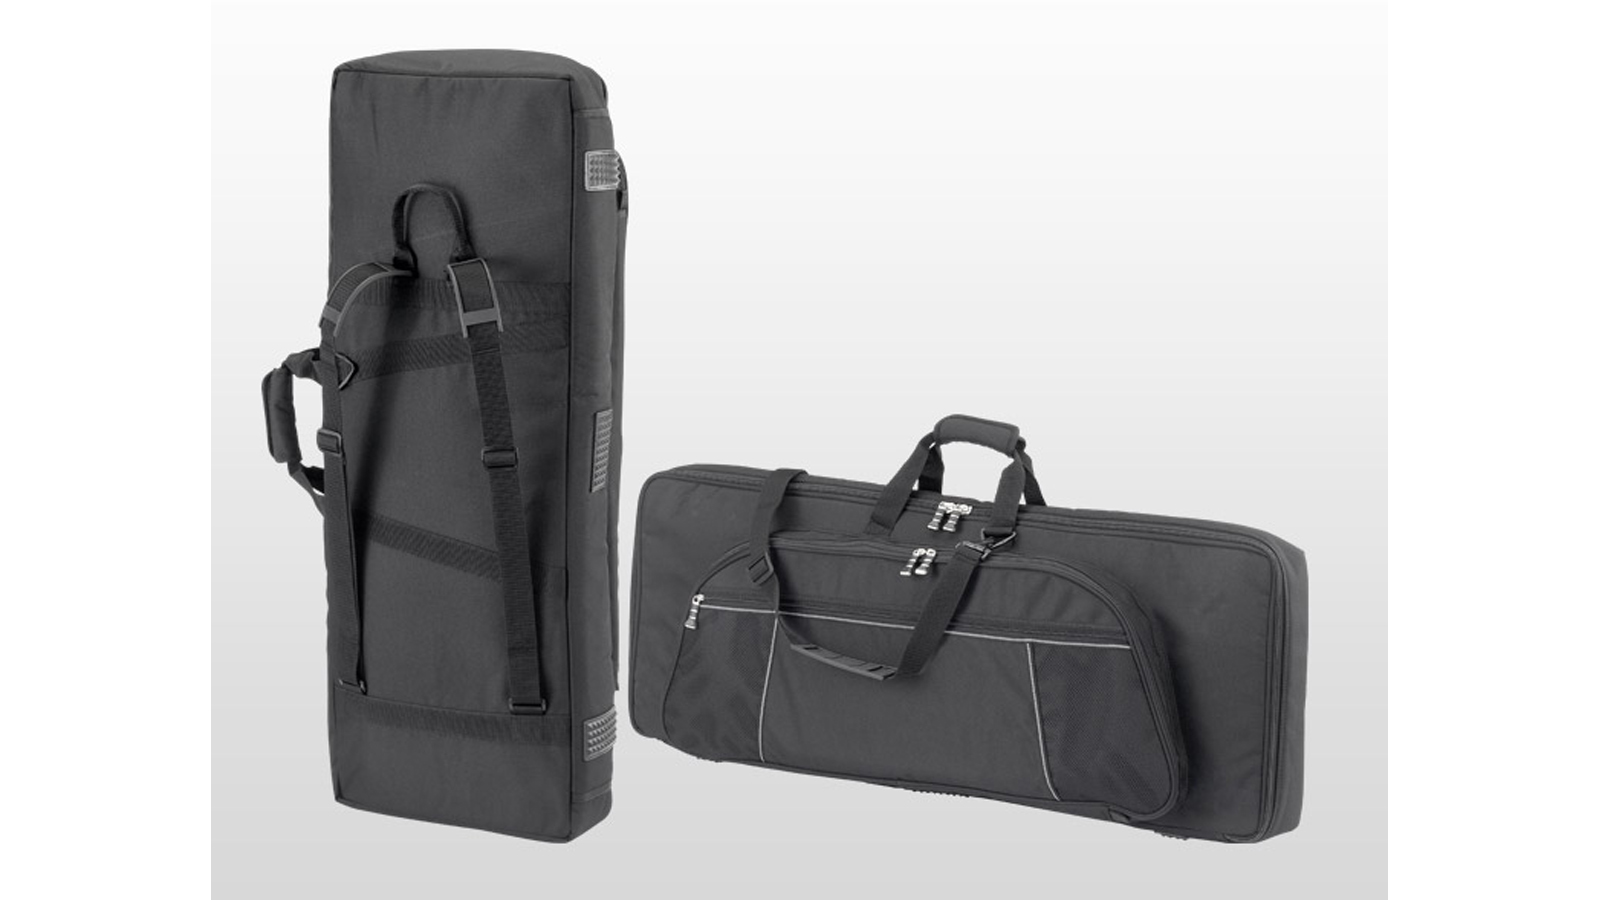 Soundwear Keyboard Bag Protector 127 x 32 x 12 cm